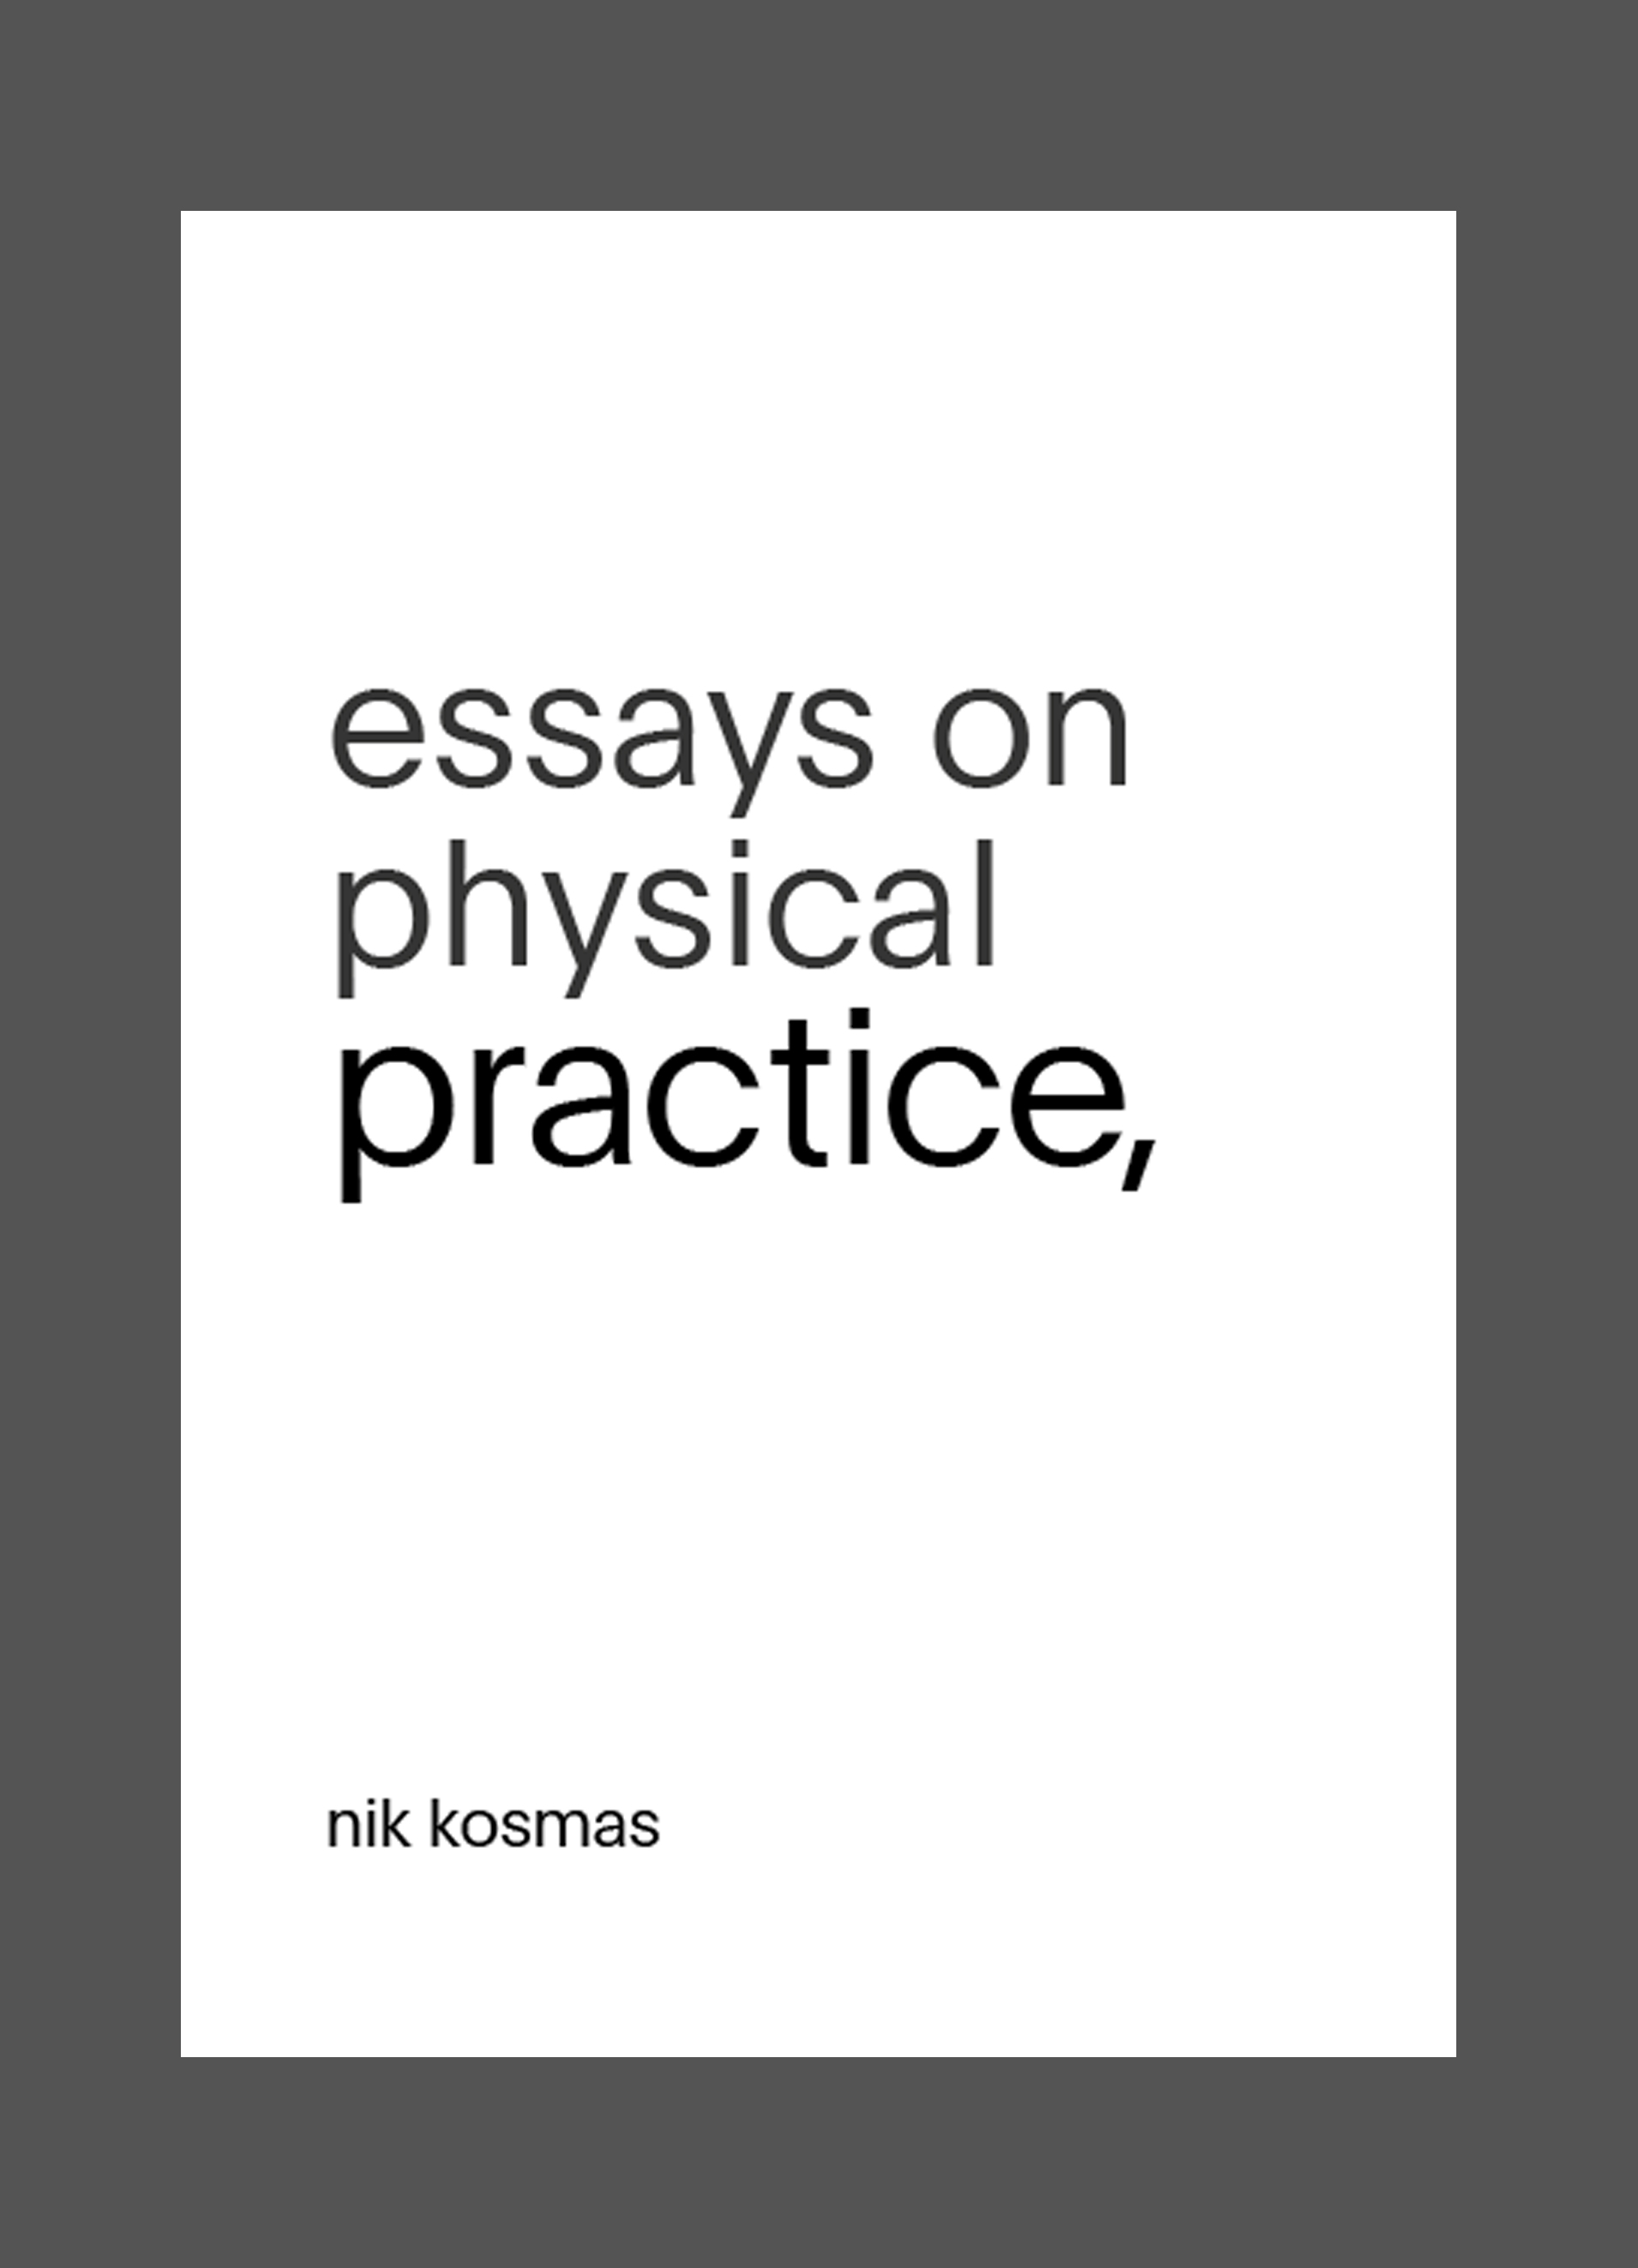 physics practical essay The physics subject test assesses your understanding of concepts from one year of introductory physics on the college-preparatory level, as well as reasoning and problem-solving skills derived from.